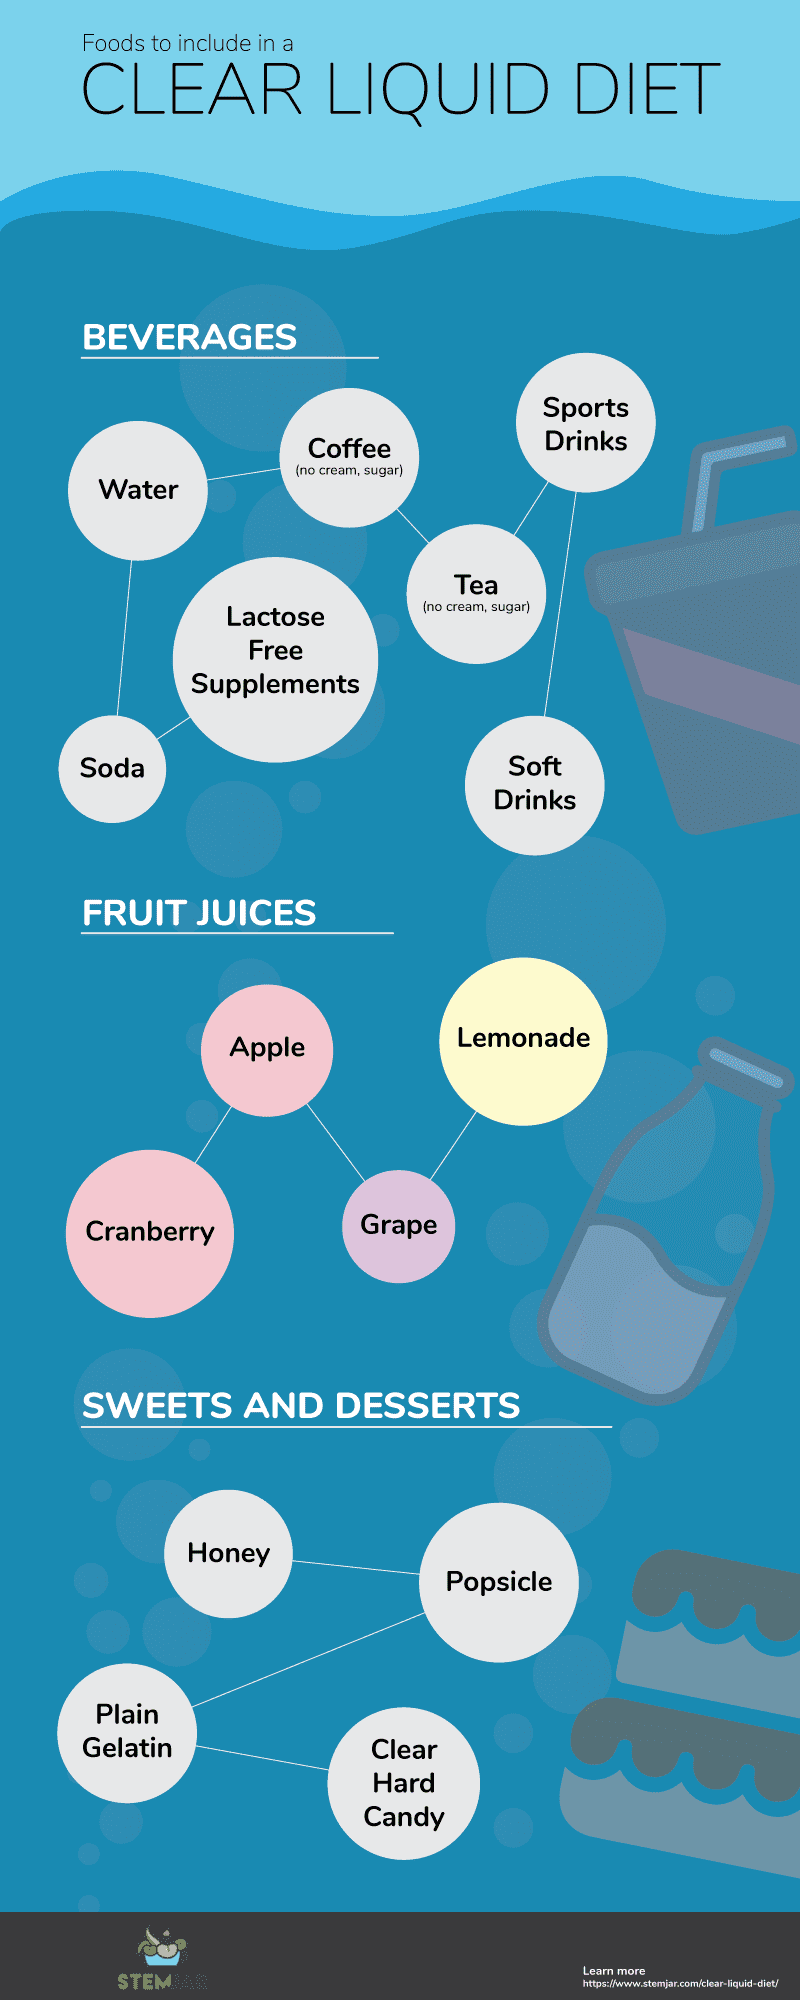 Clear liquid diet includes liquids that are clear - like water, juices or broths – meaning, there should be no floating residual on the fluid. You cannot have pulps, bits of foods or even condiments. Some examples are apple juice, white grape juice, herbal tea, clear broth of chicken or vegetables